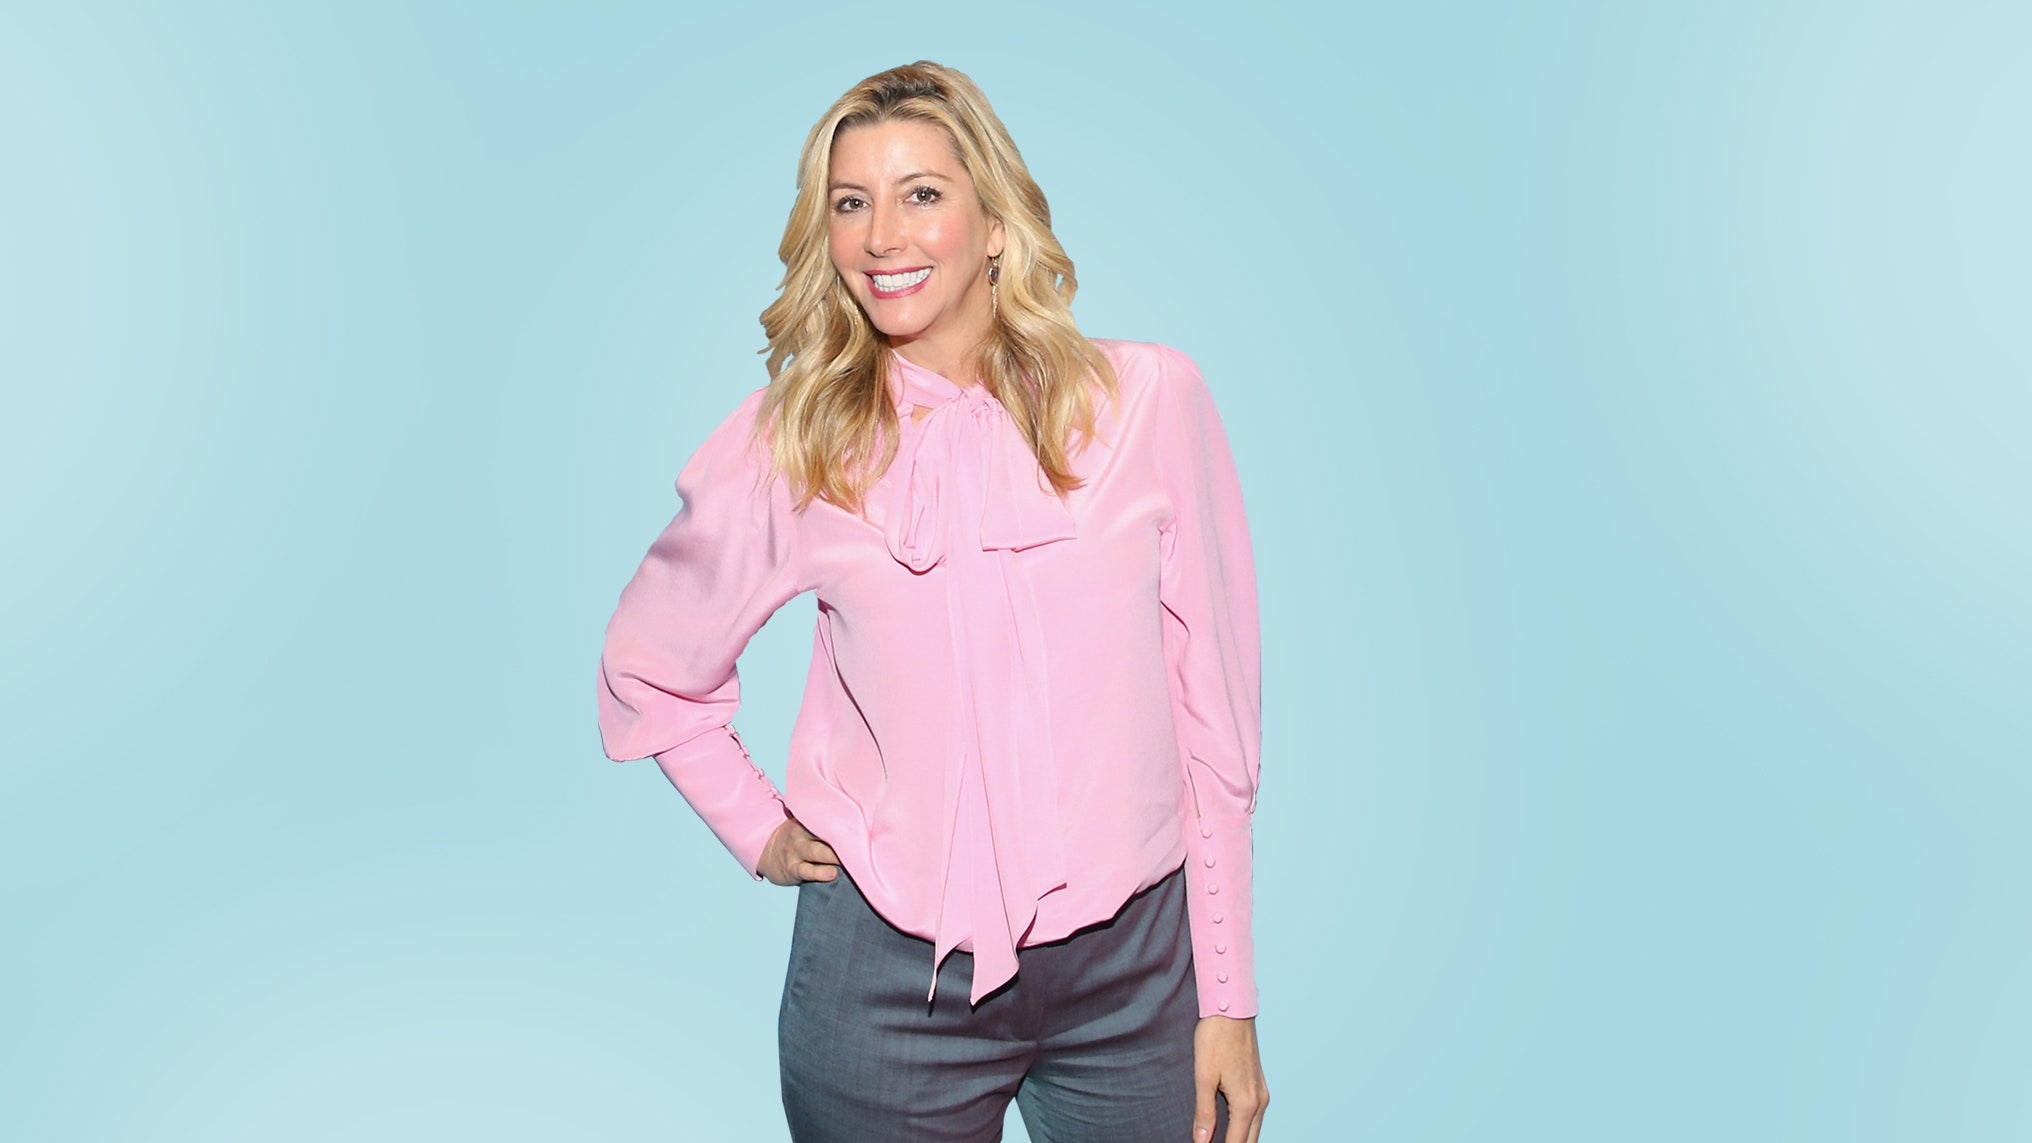 Sara Blakely, the founder of the shapewear company, Spanx.